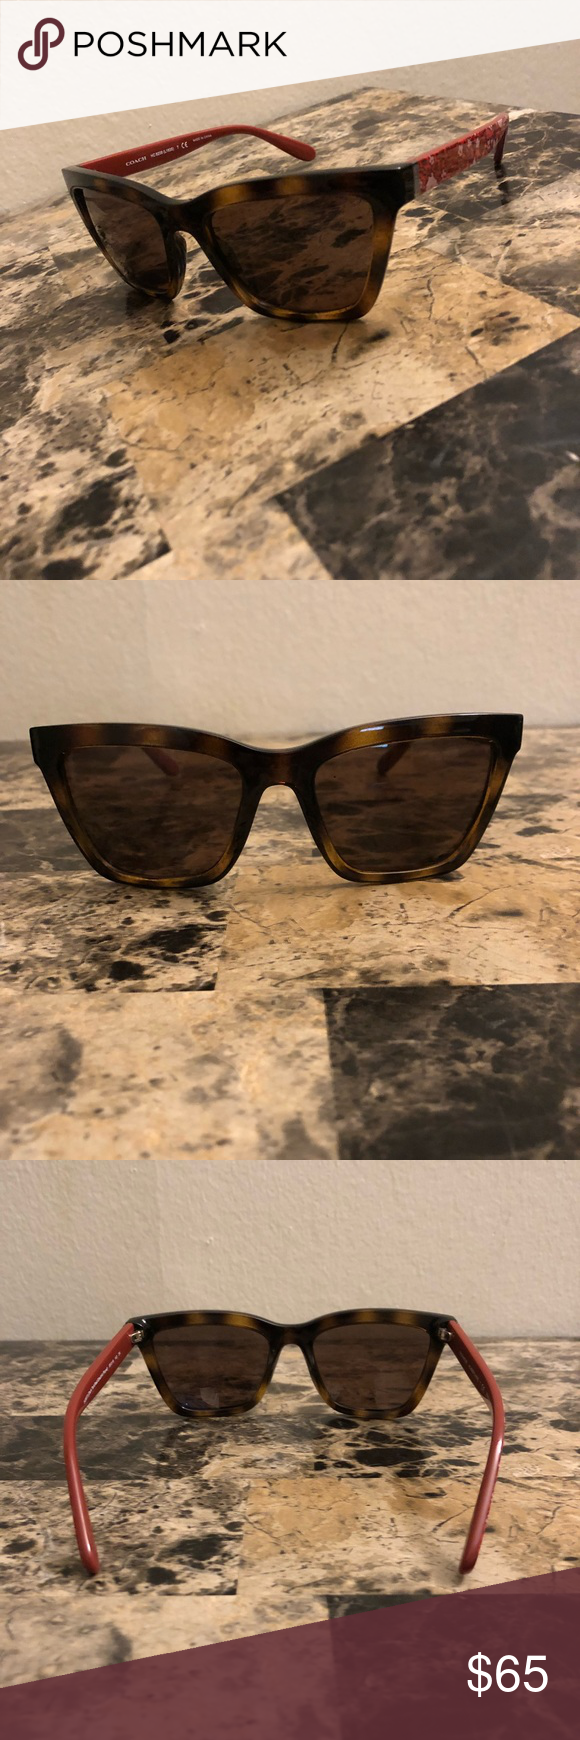 08ac67f91af3f ... ireland coach 8208 545973 brown solid square sunglasses coach womens  hc8208 545973 55 brown solid plastic